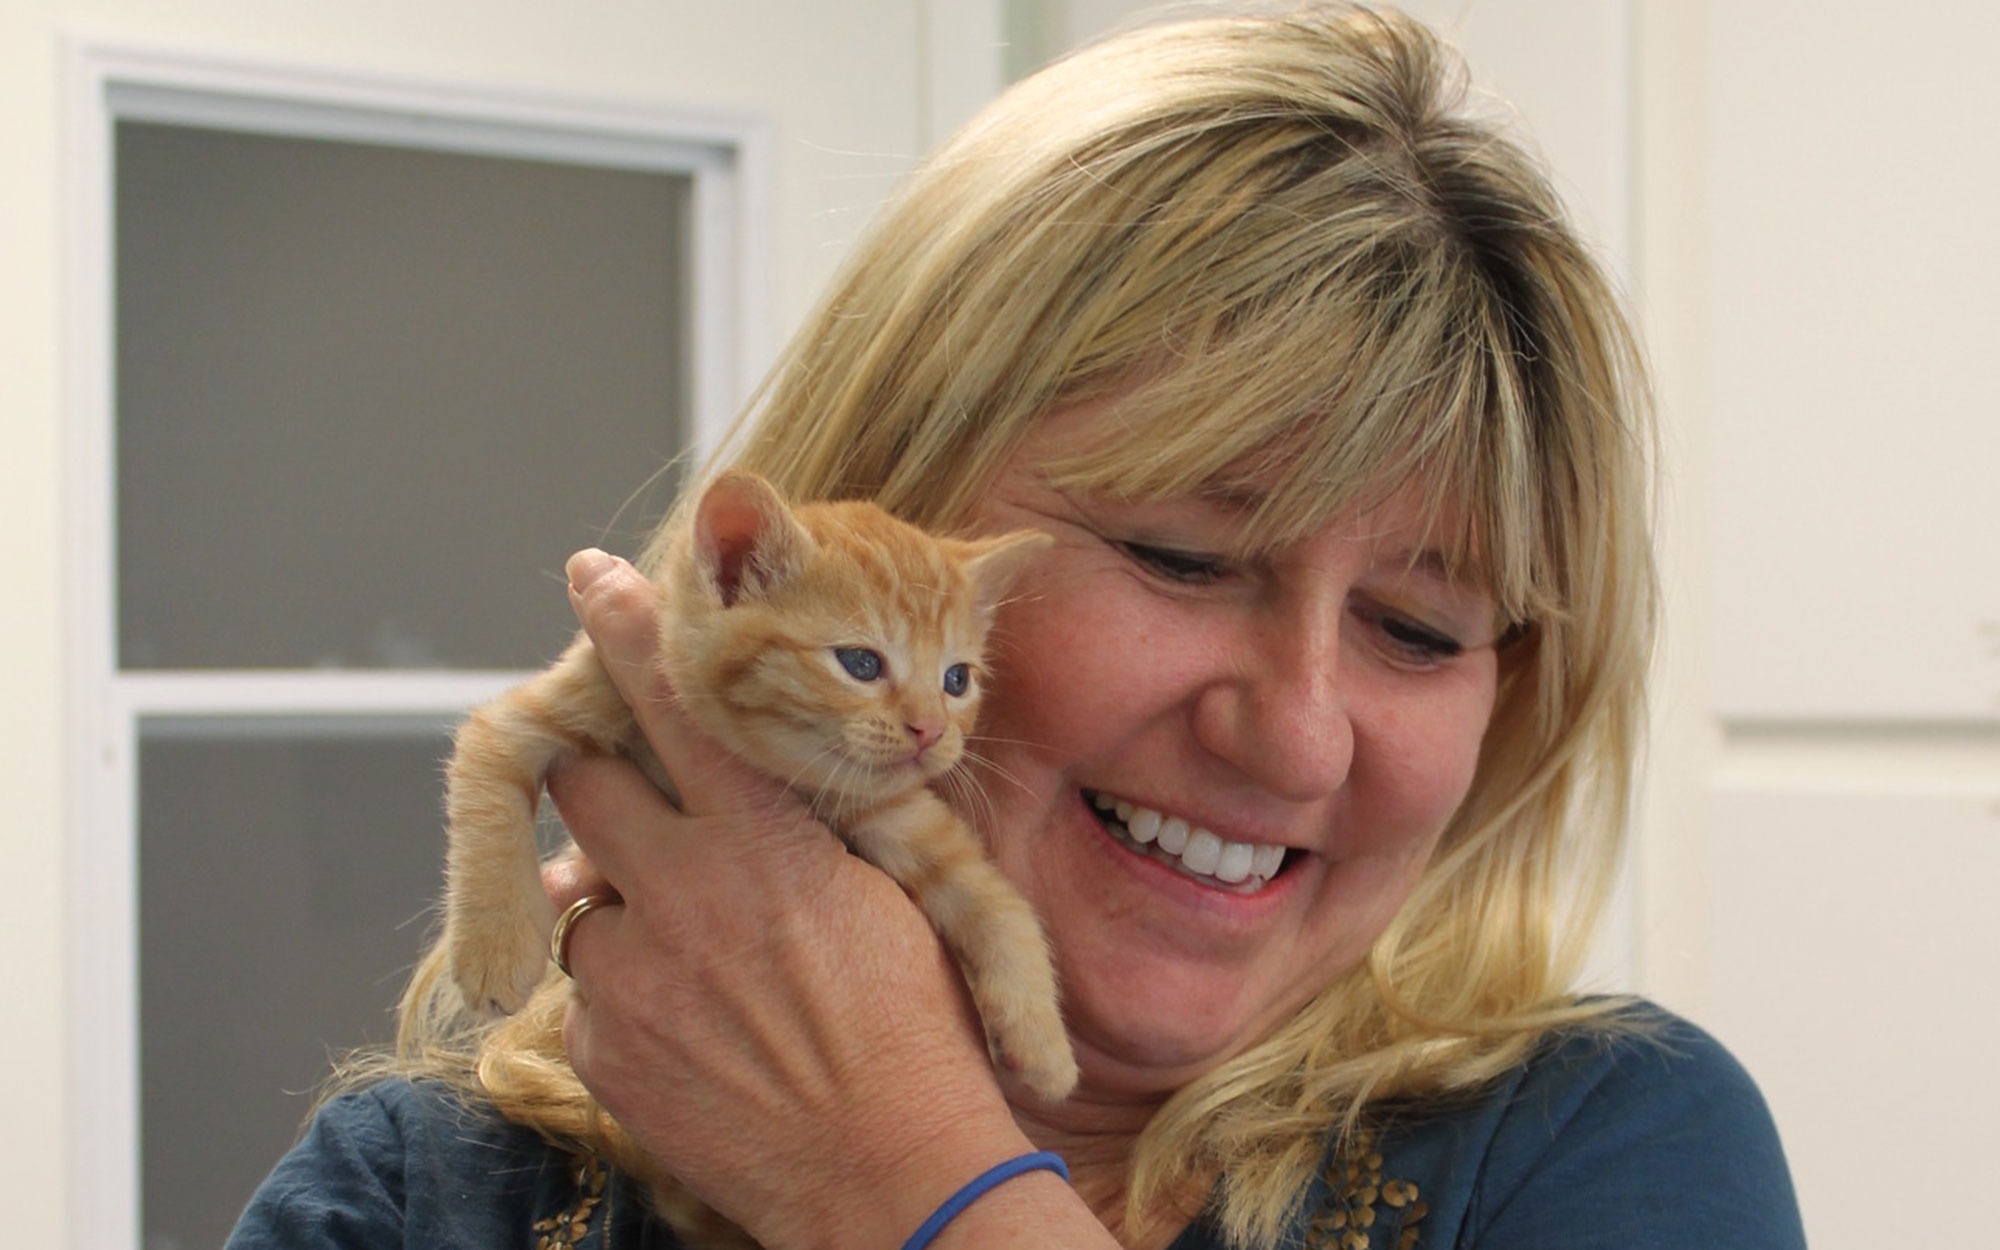 FieldHaven executive director Joy Smith holding an orange tabby kitten